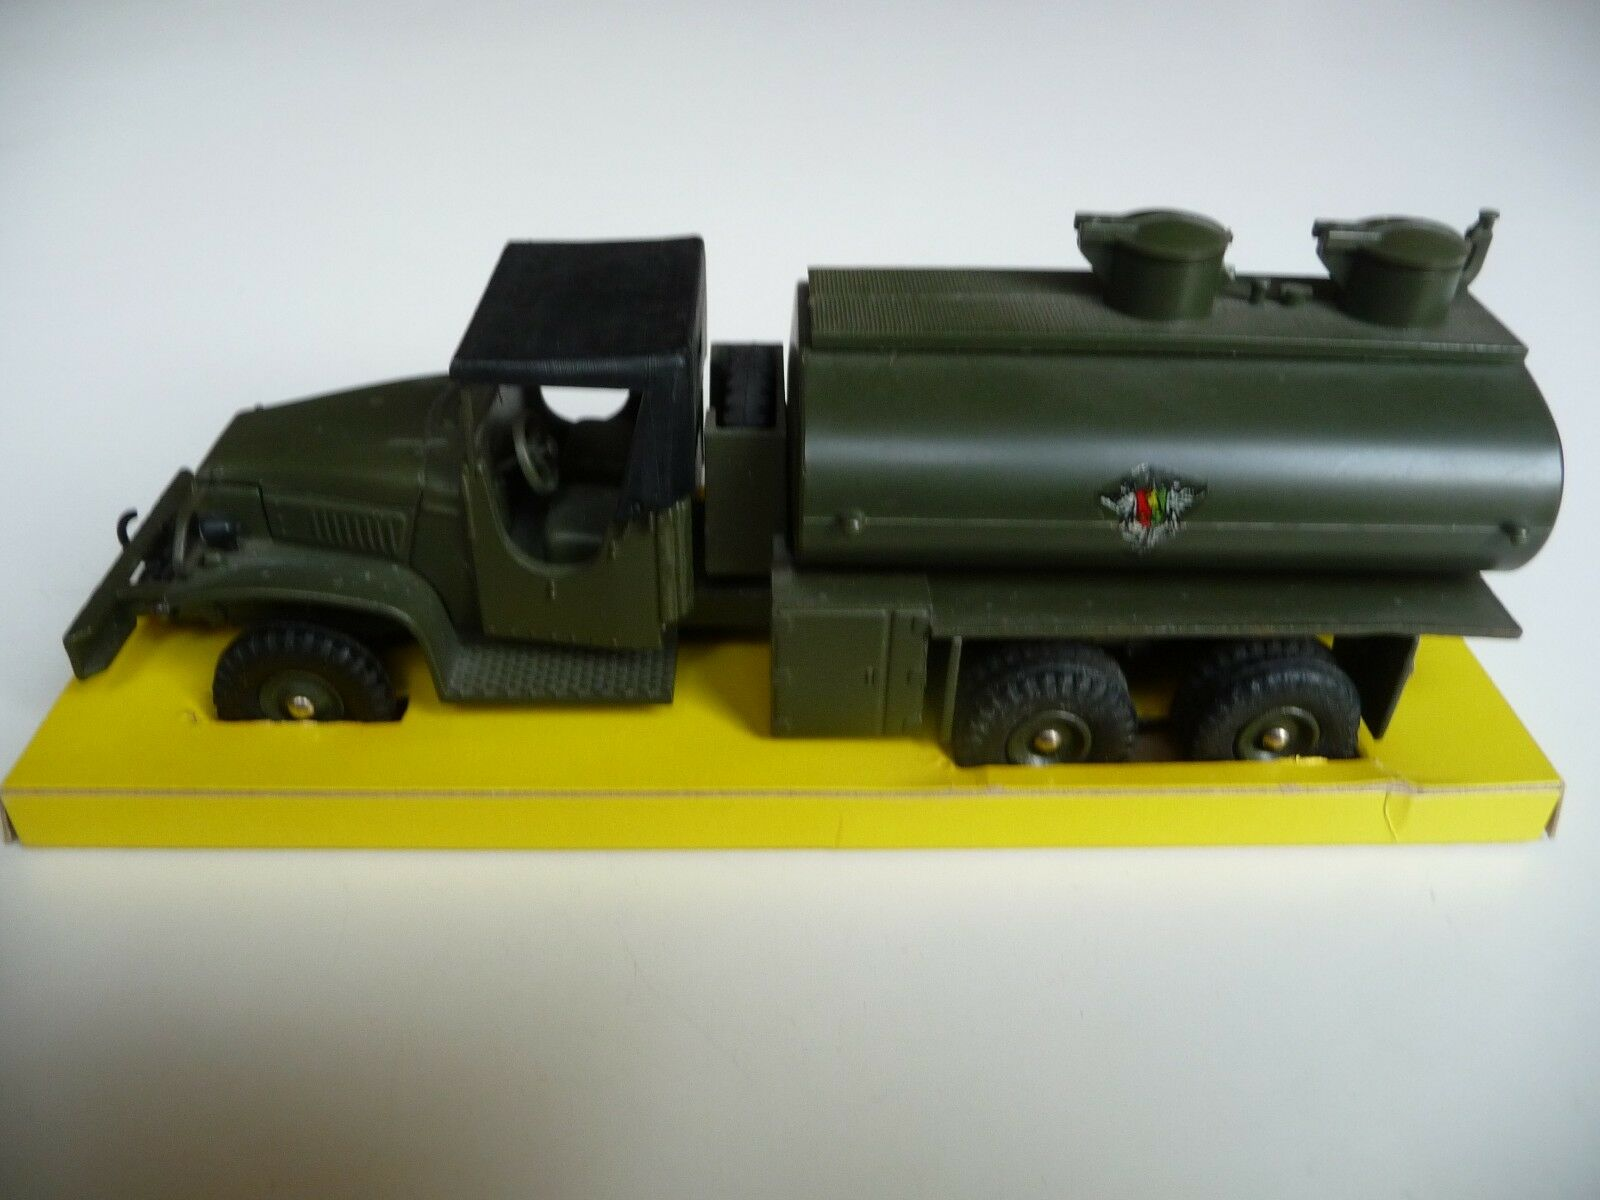 French Dinky Toys 823 - Camion G.M.C. Military Tanker - Excellent Condition